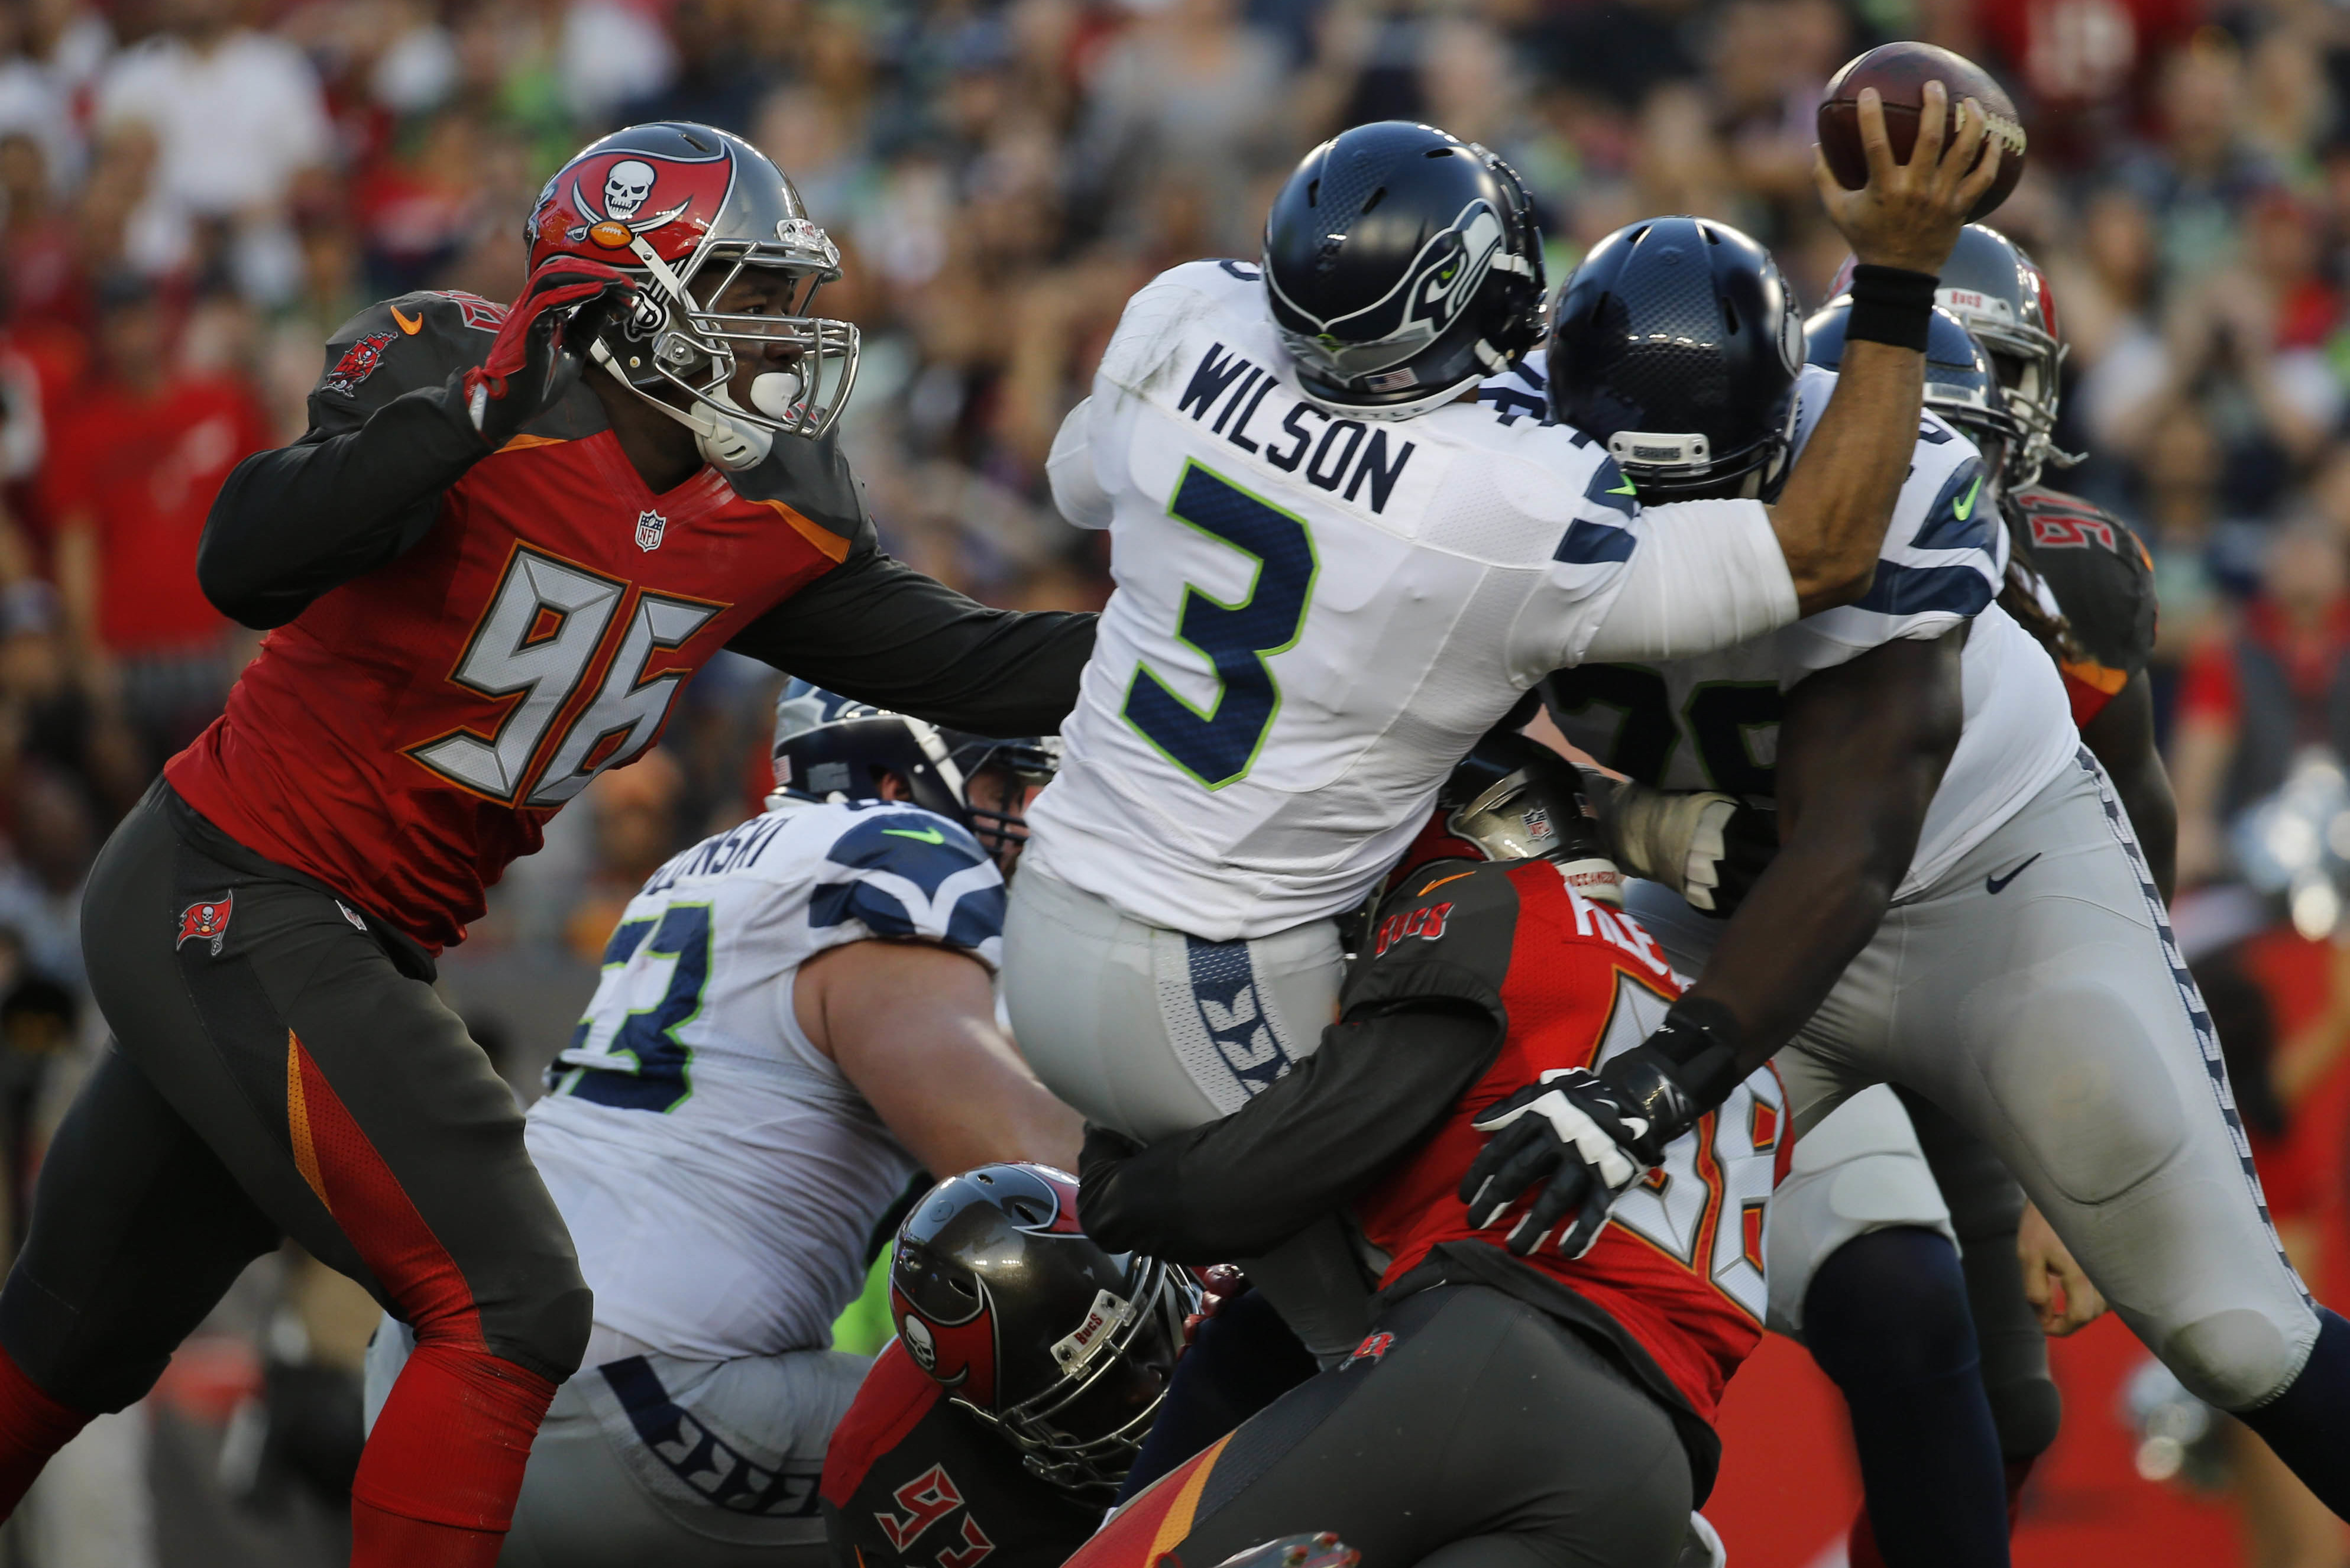 Bucs use early scores, great defense to beat Seahawks